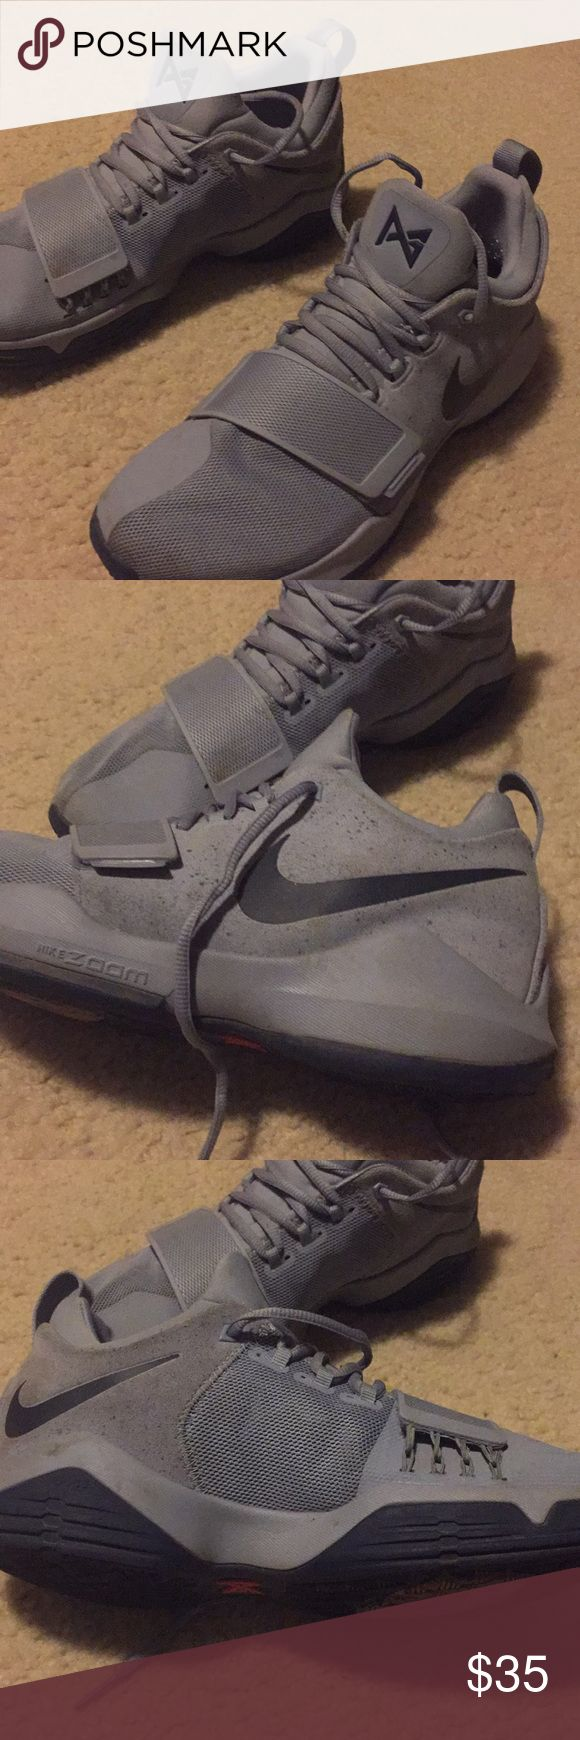 Paul George 1 Glacier Blue Somewhat worn, used for a month. Does not ship with original box (it's edges are rounded from age) Nike Shoes Sneakers